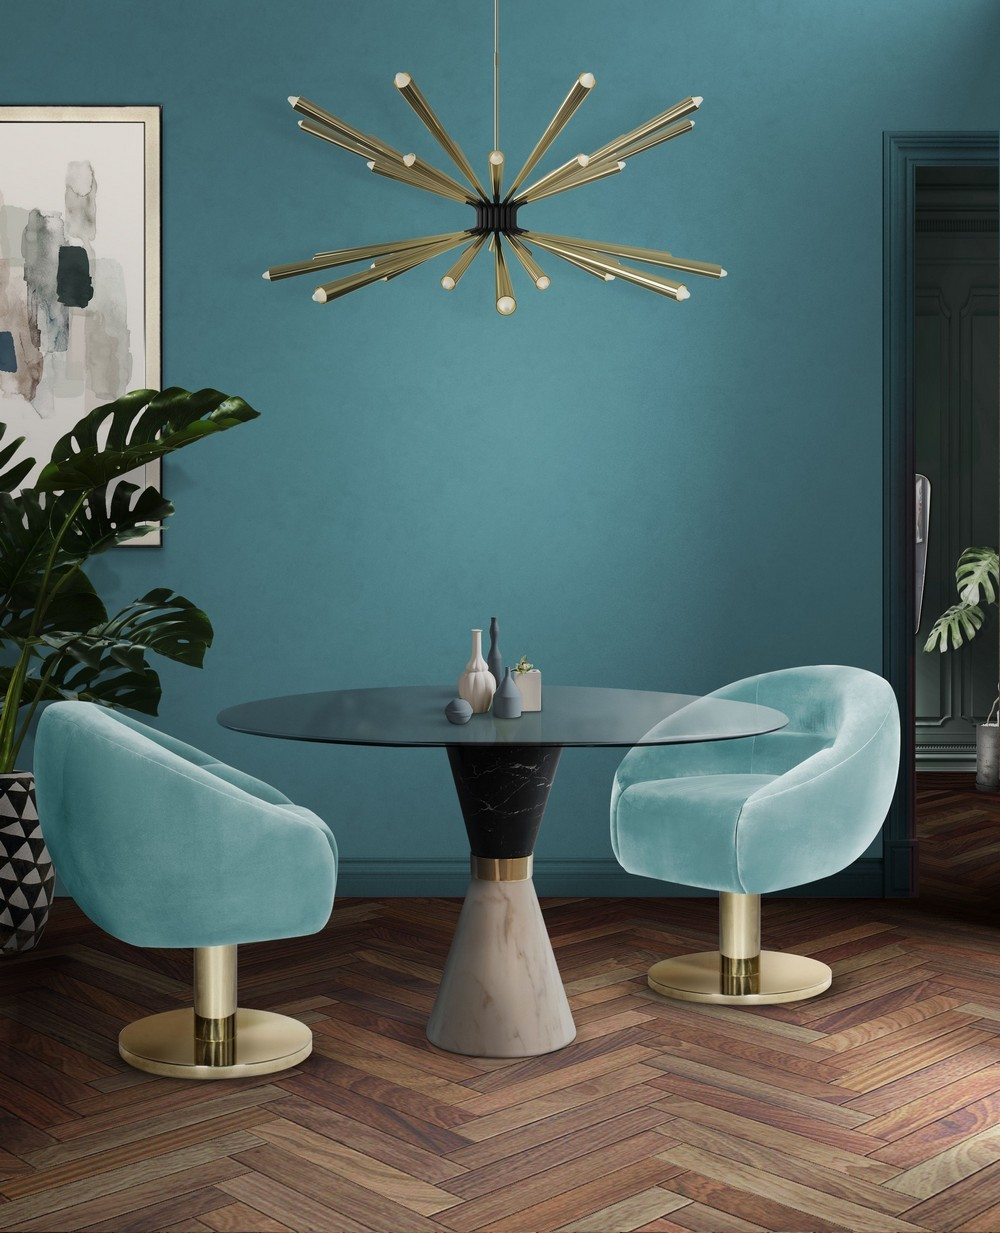 Luxury Dining Chairs To Transform Your Next Dining Room Project dining chairs Luxury Dining Chairs To Transform Your Next Dining Room Project JSM G  w